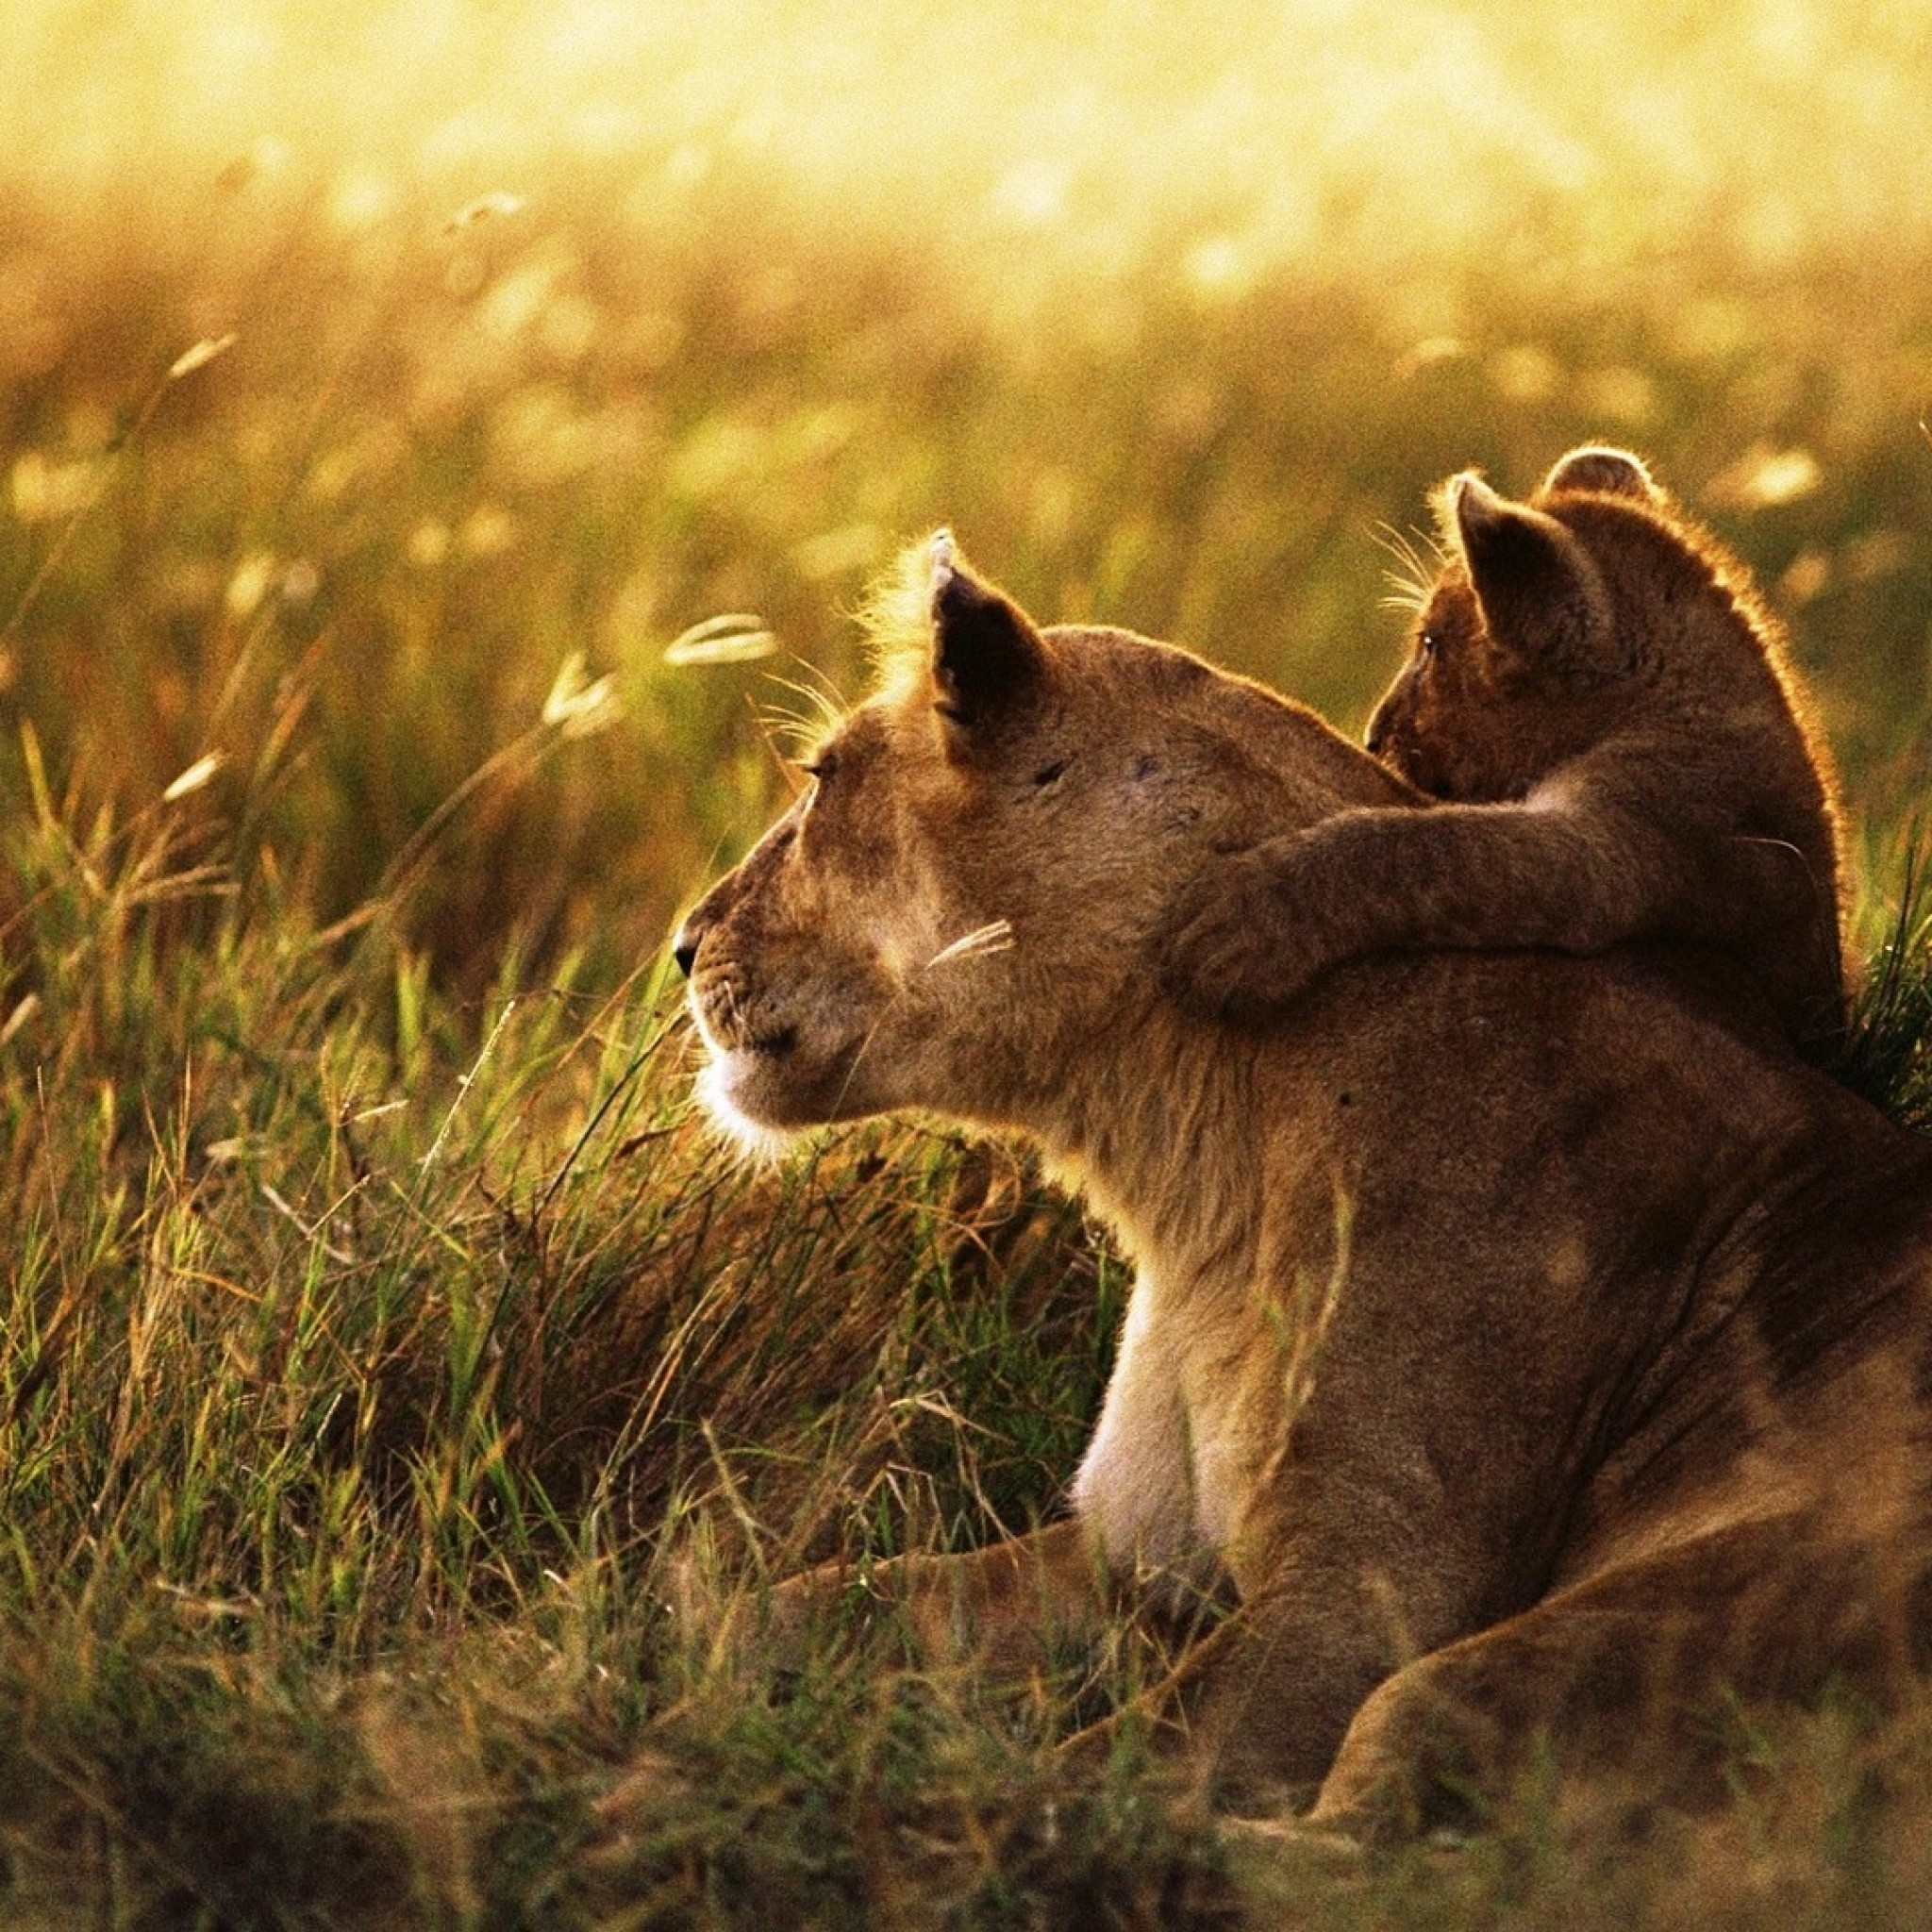 Beautiful Photos Of Lion Cubs You Must Not Miss Utterly Cute Yet. Wallpaper  Wallpapers Page 257